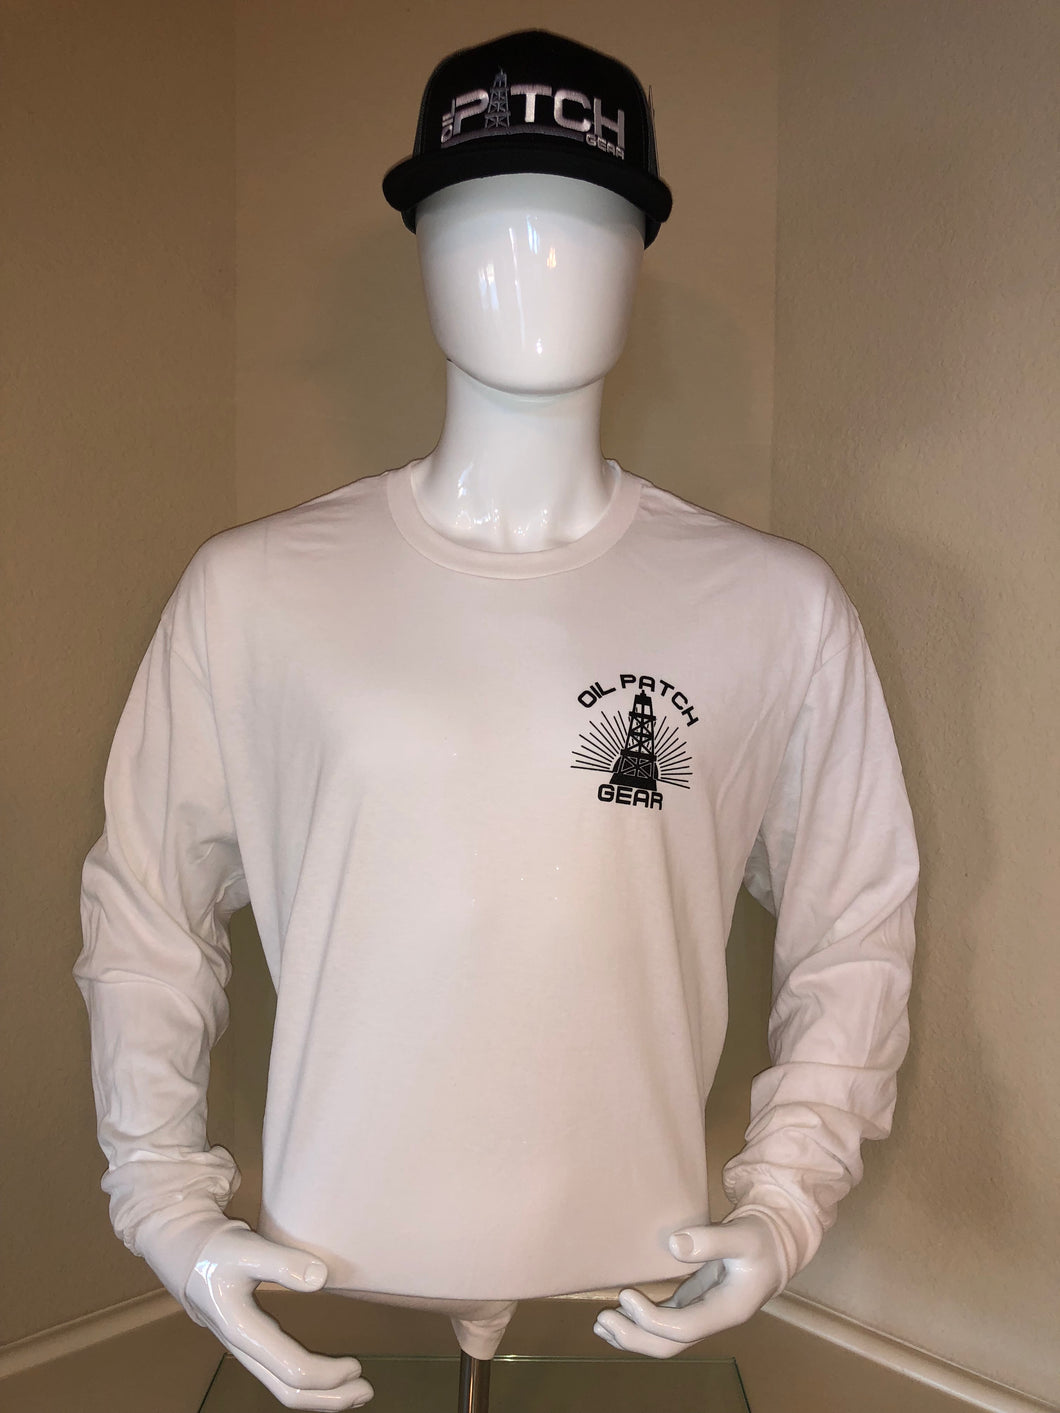 OPG White Long Sleeve T-Shirt with Black Logo